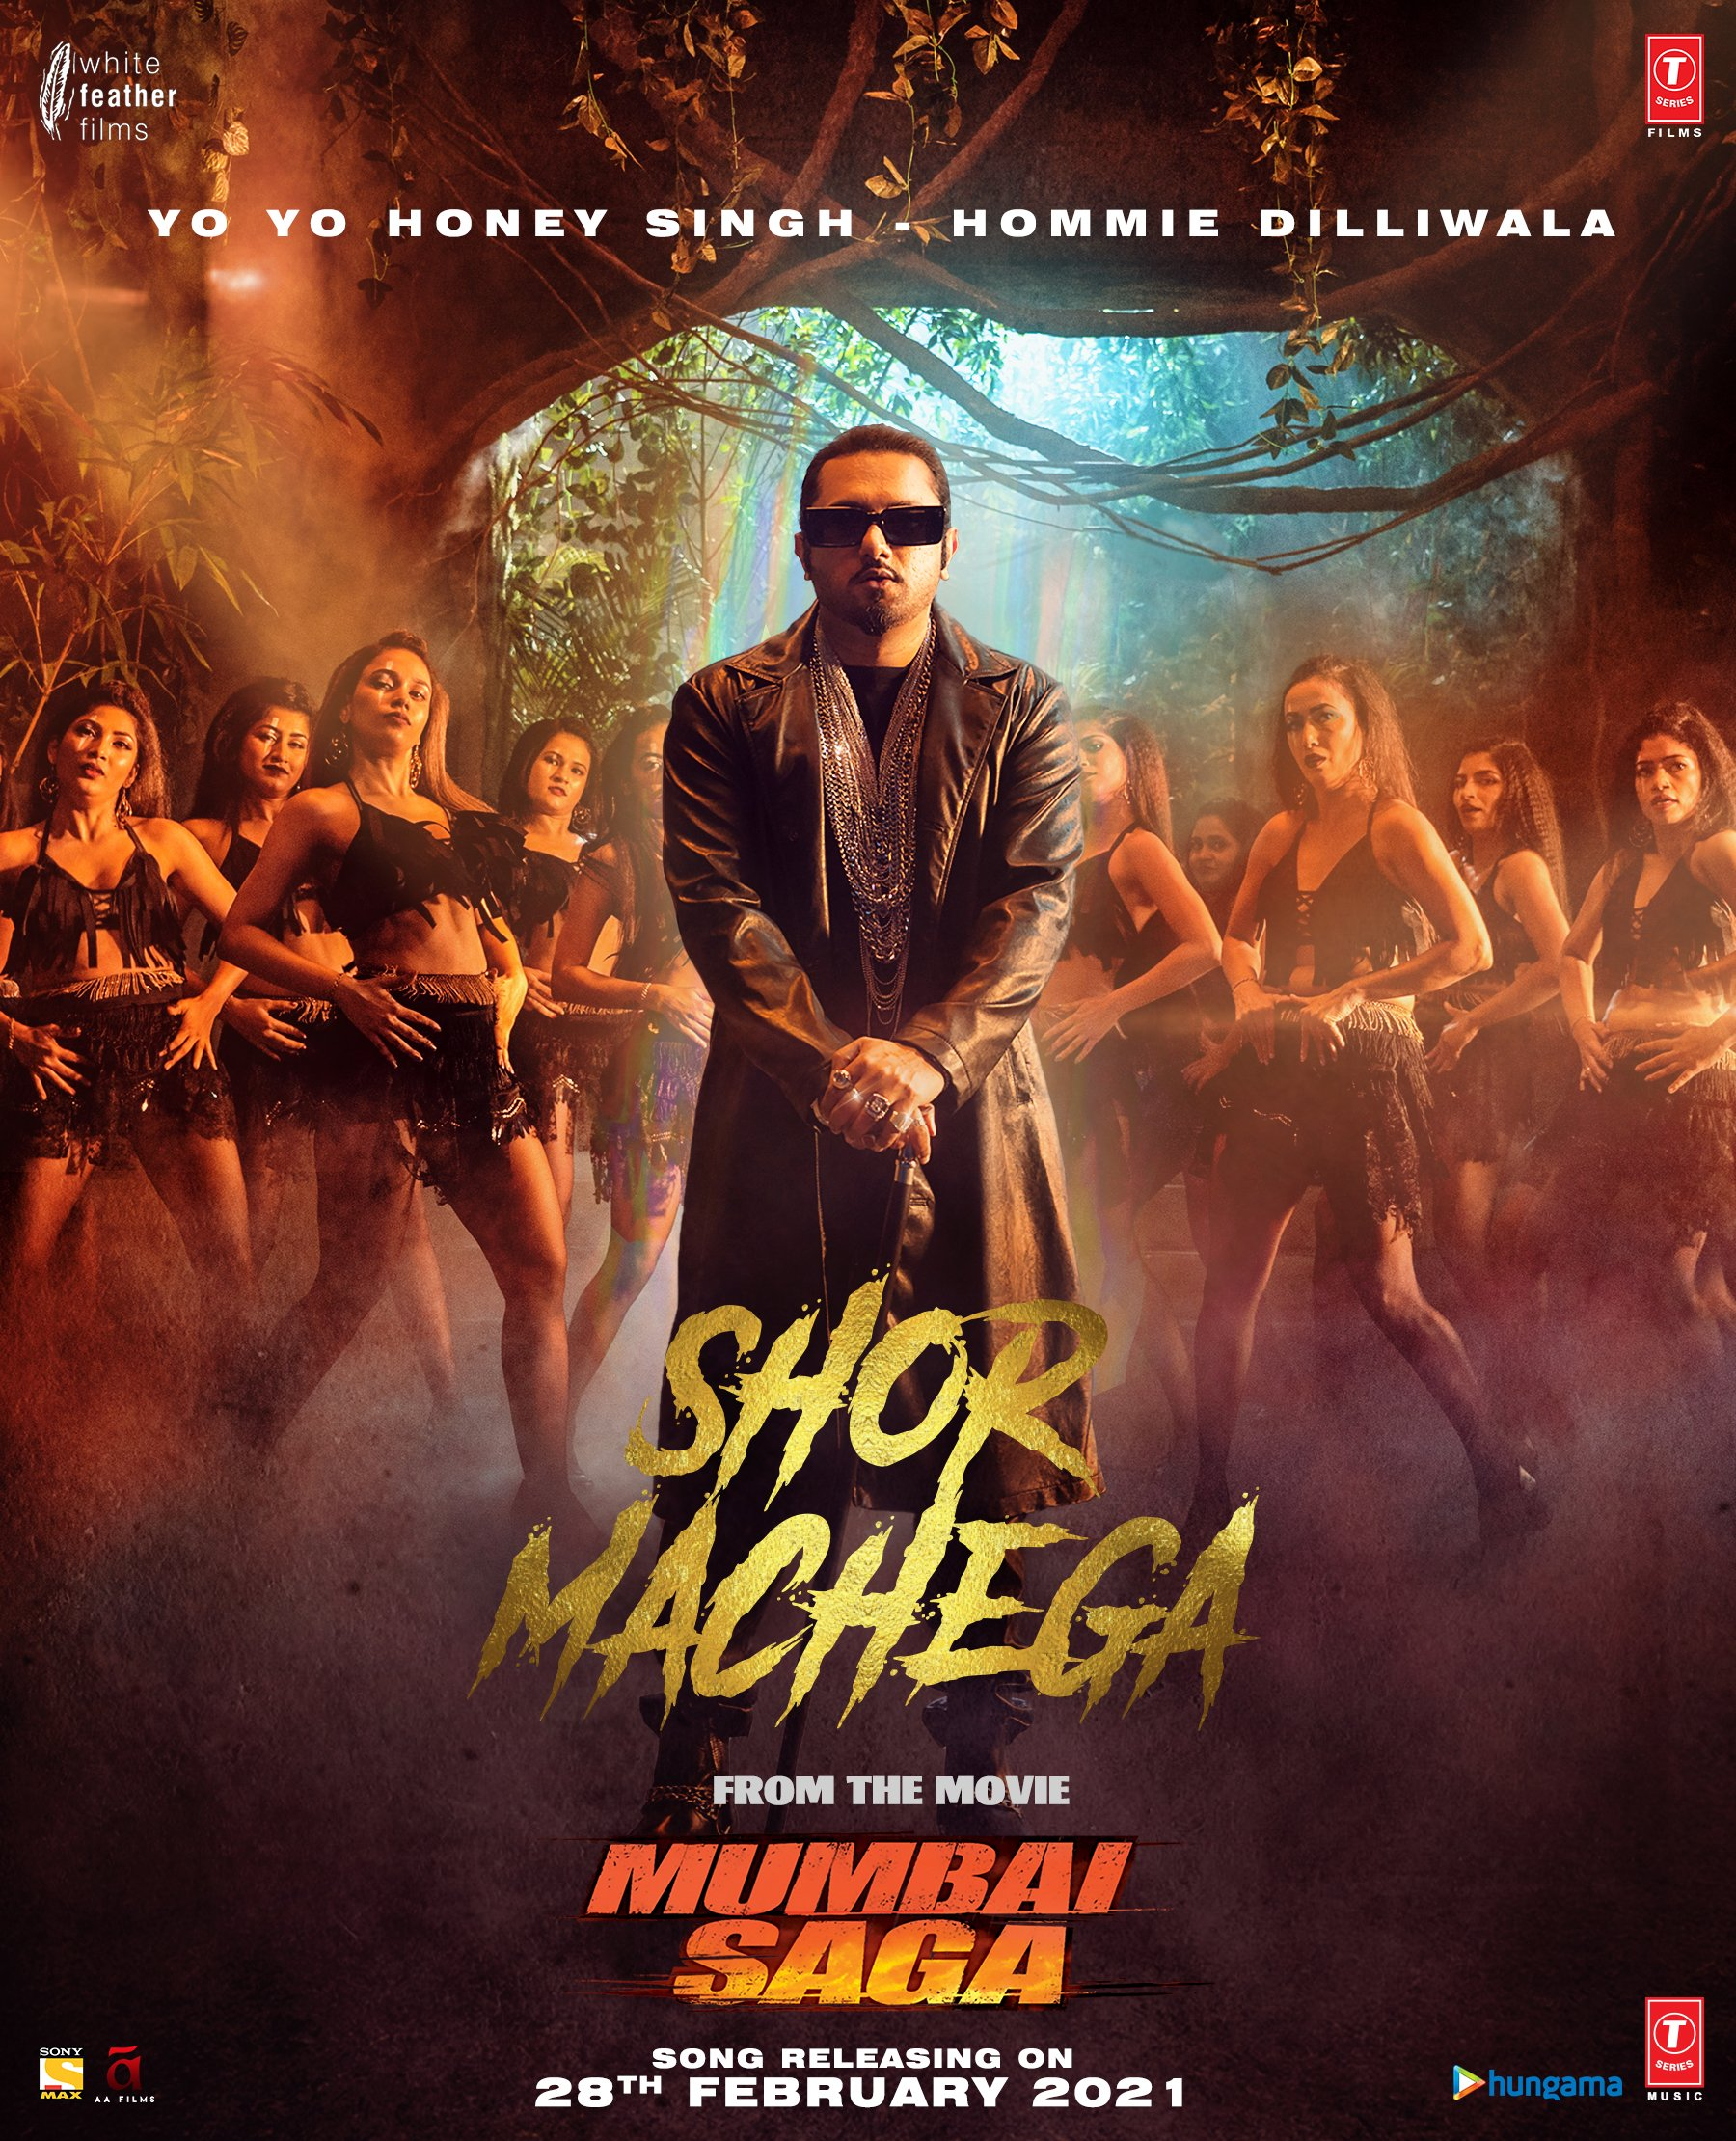 Shor Machega (Mumbai Saga) 2021 By Yo Yo Honey Singh Hindi Video Song 1080p HDRip 99MB Download